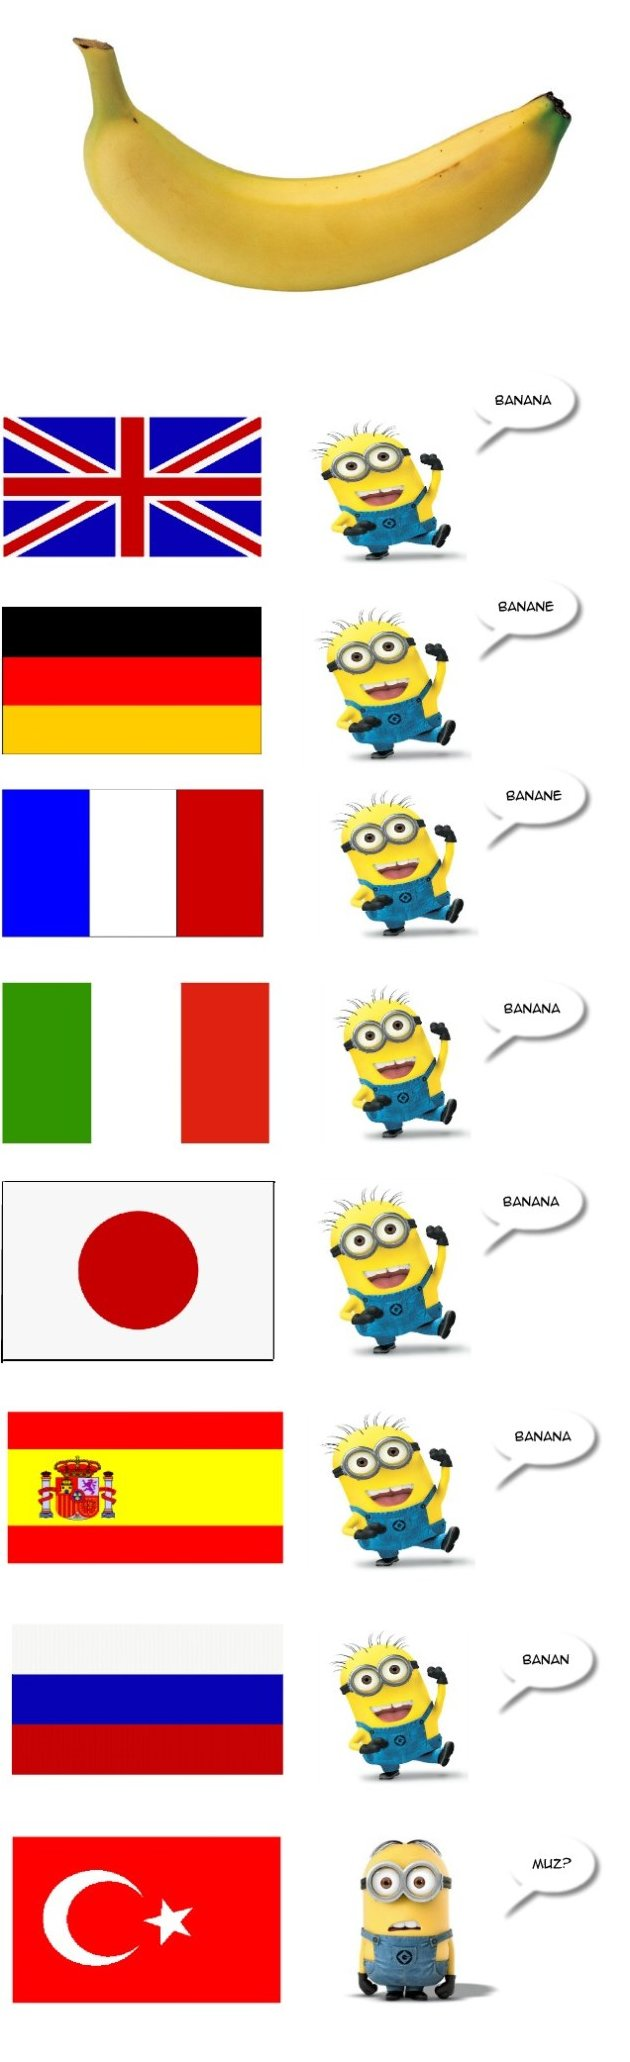 Banana in different languages